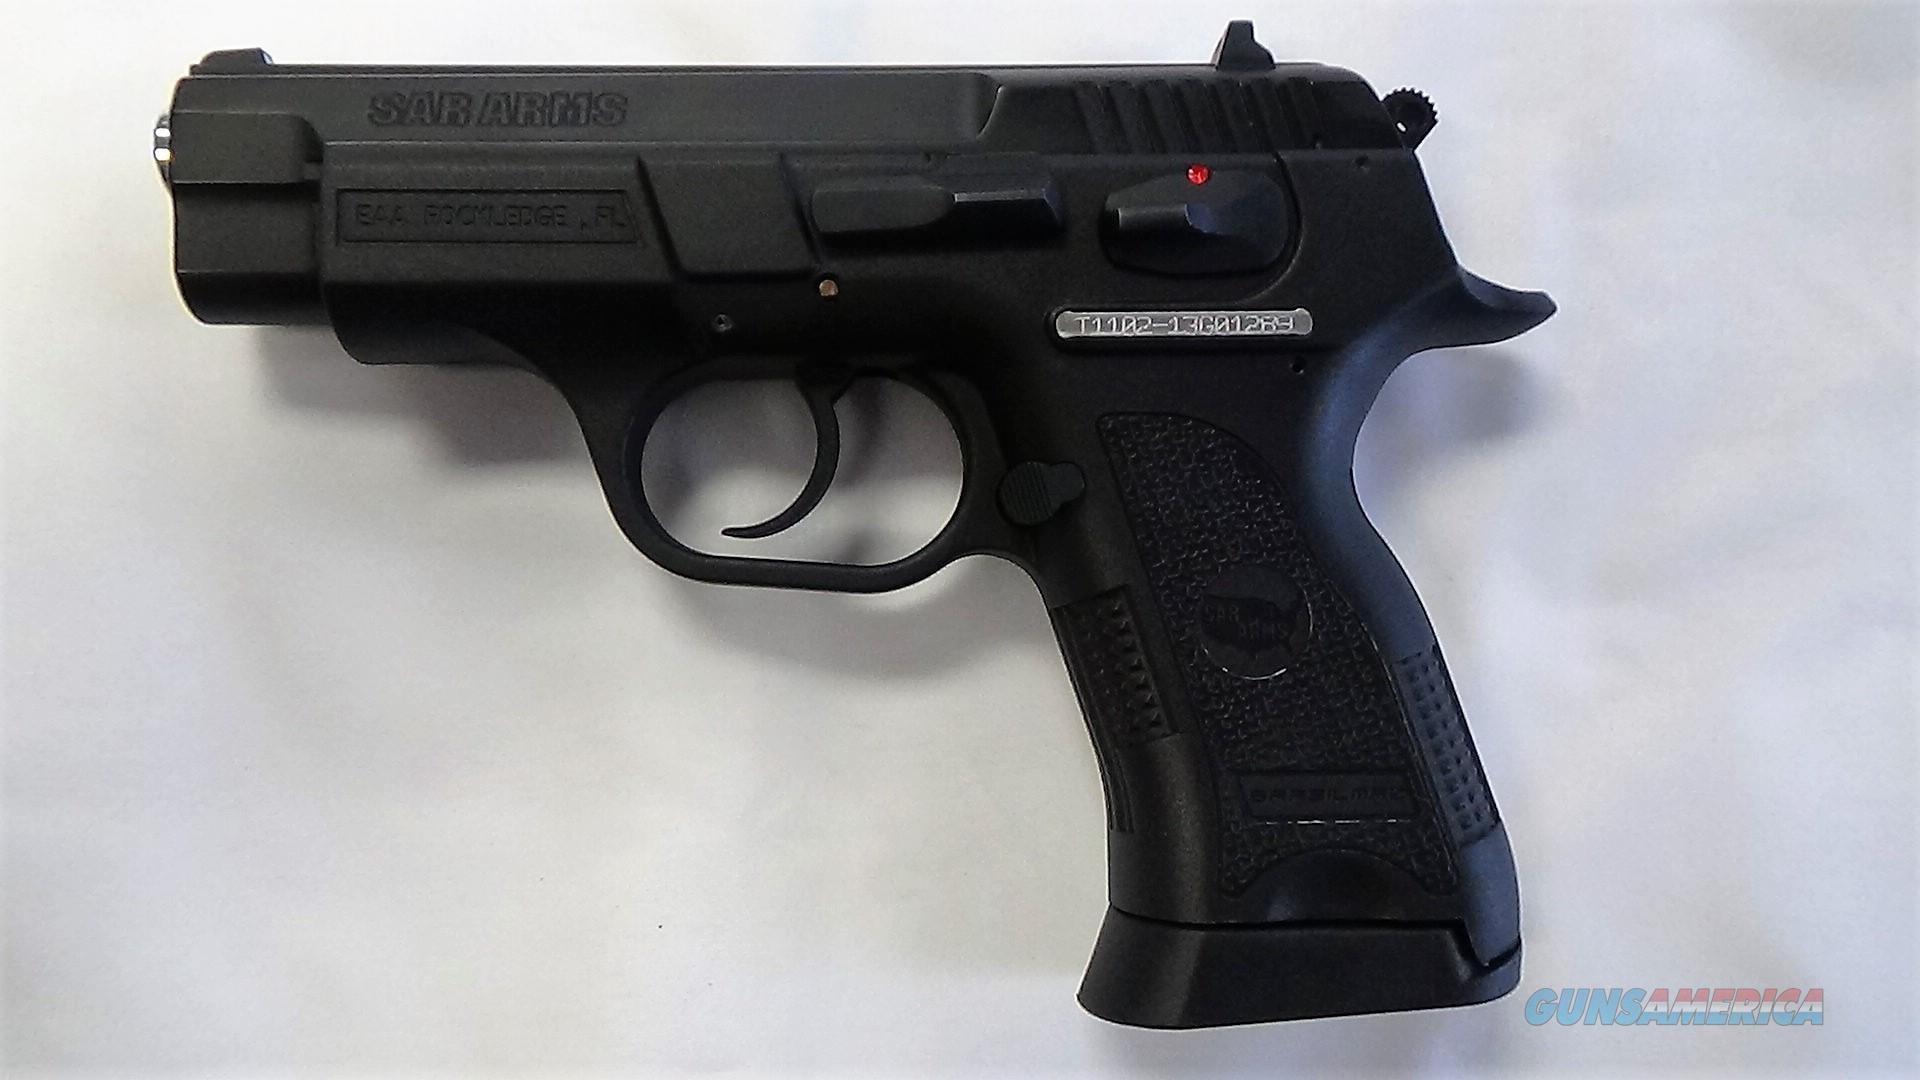 EAA SARB6P 9MM LUGER USED  Guns > Pistols > EAA Pistols > Other